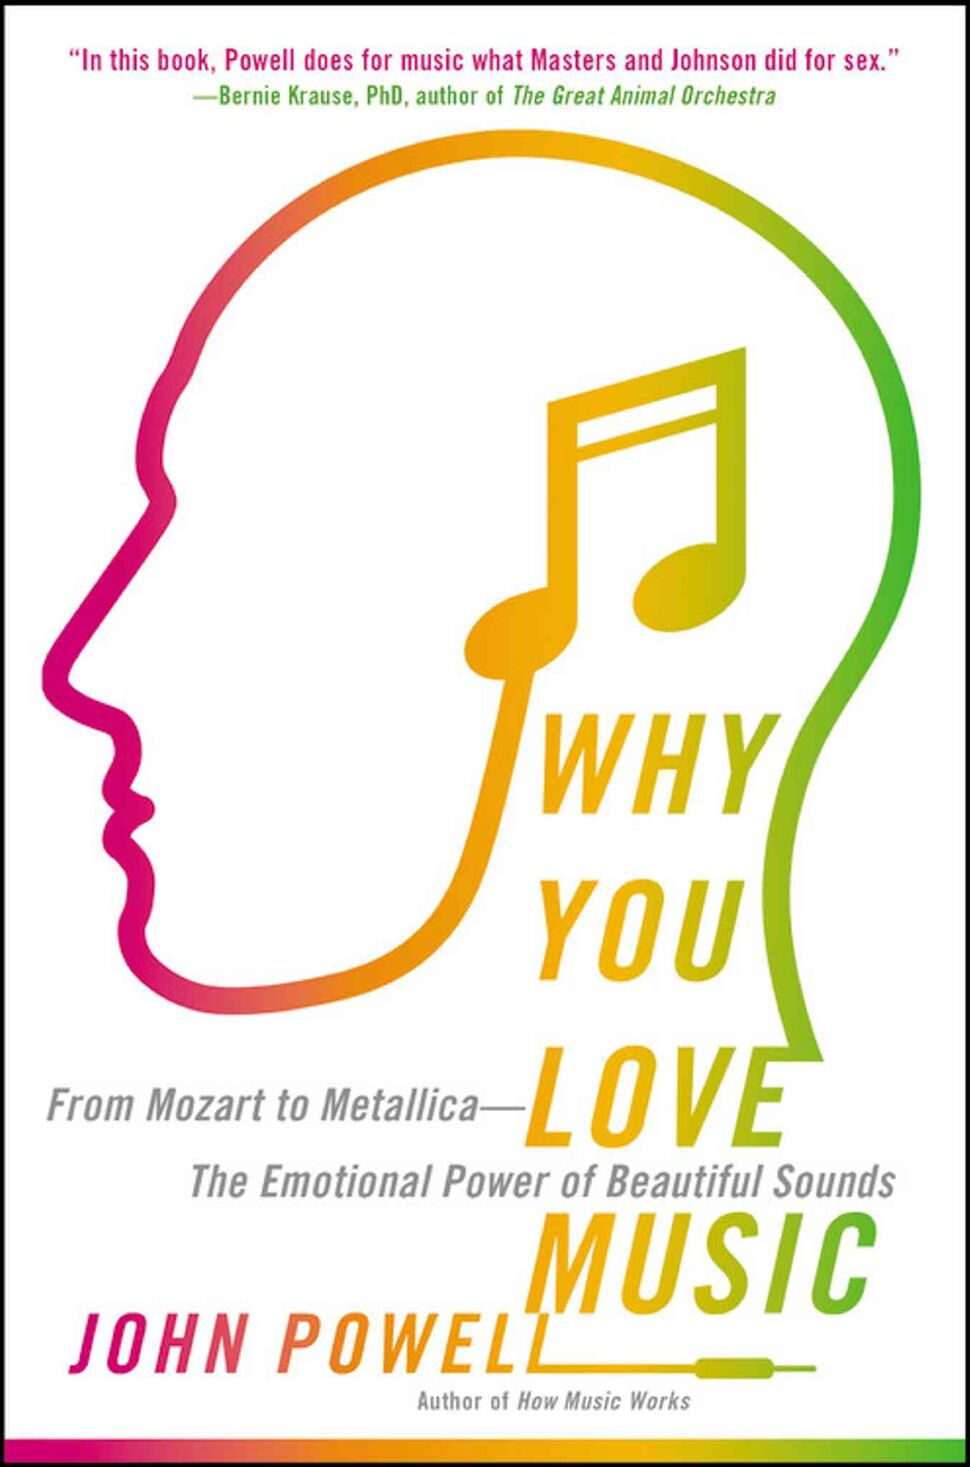 "<h3>Why You Love Music: From Mozart to Metallica — The Emotional Power of Beautiful Sounds</h3> <br/> By John Powell <br/> <strong>There is no one blueprint that will turn your music-appreciation crank, but as British scientist and musician Powell says: ""Music has the power to alleviate depression, reduced perceived pain, help you cope with various illness and disorders, reduce boredom"" and more. Furthermore, you can probably thank your mother for instilling your love of music.</strong> <br/> — Chris Smith"